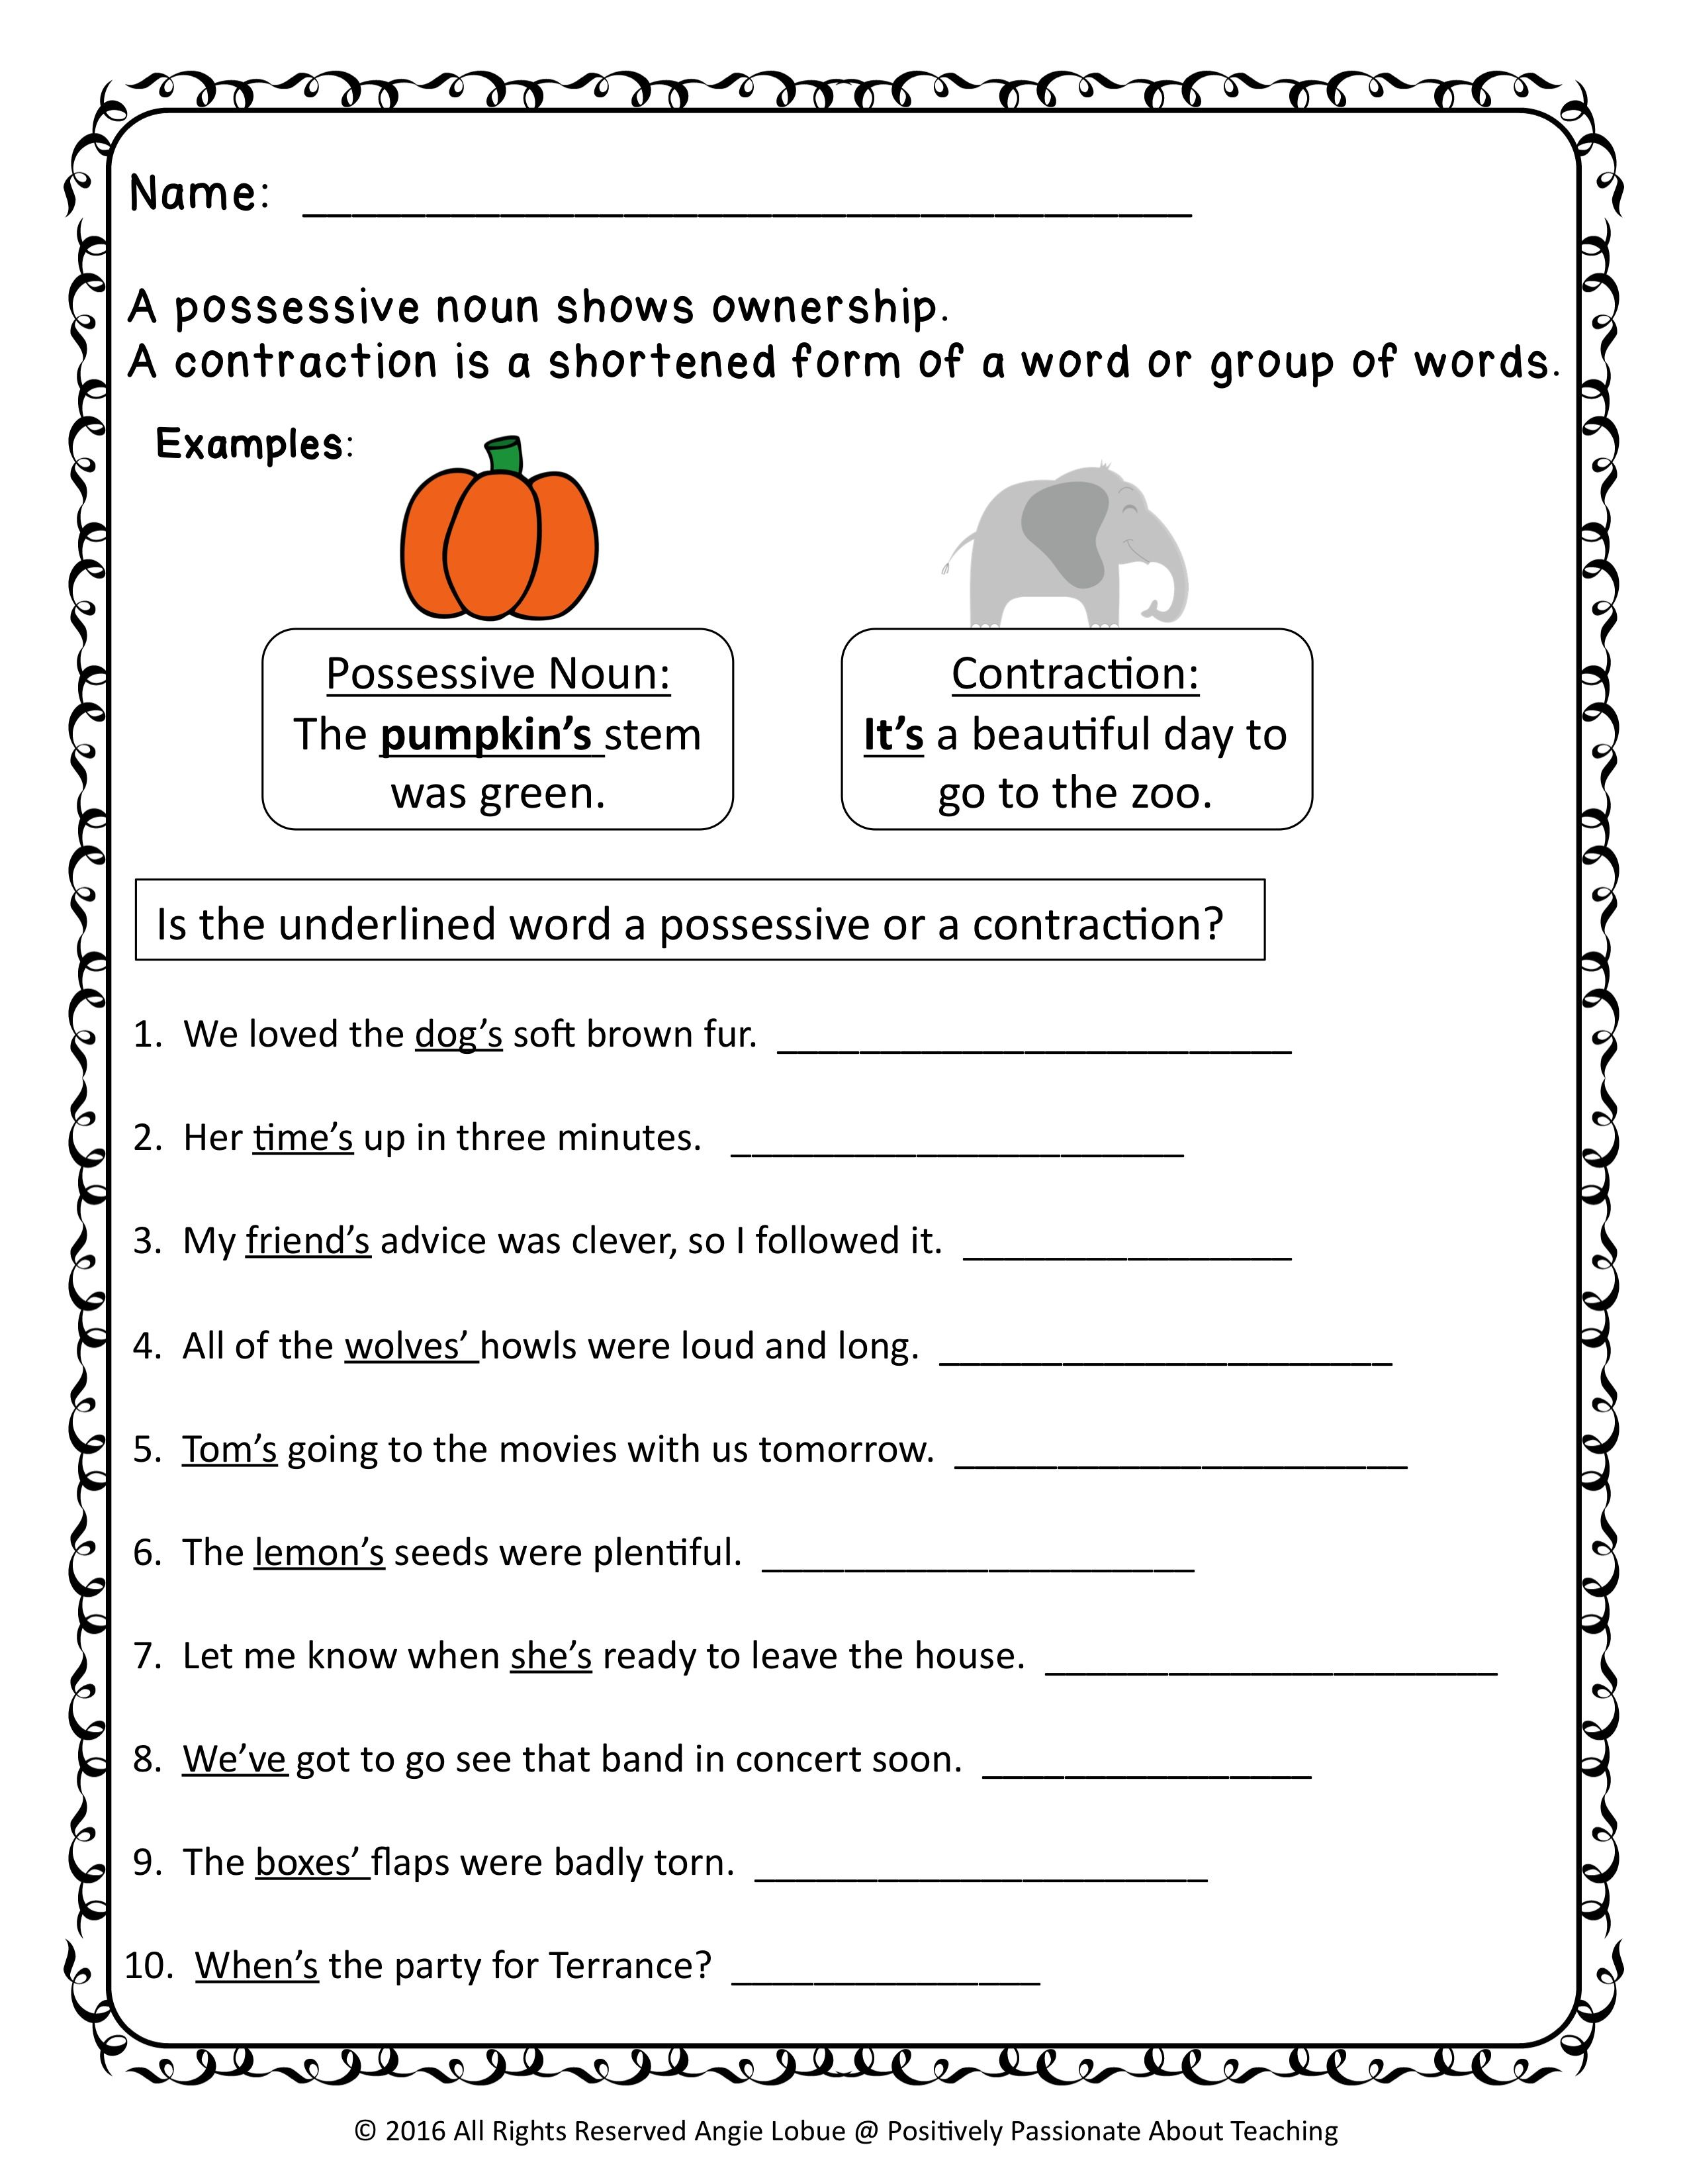 small resolution of Contractions Possessives Worksheets Kindergarten   Printable Worksheets and  Activities for Teachers